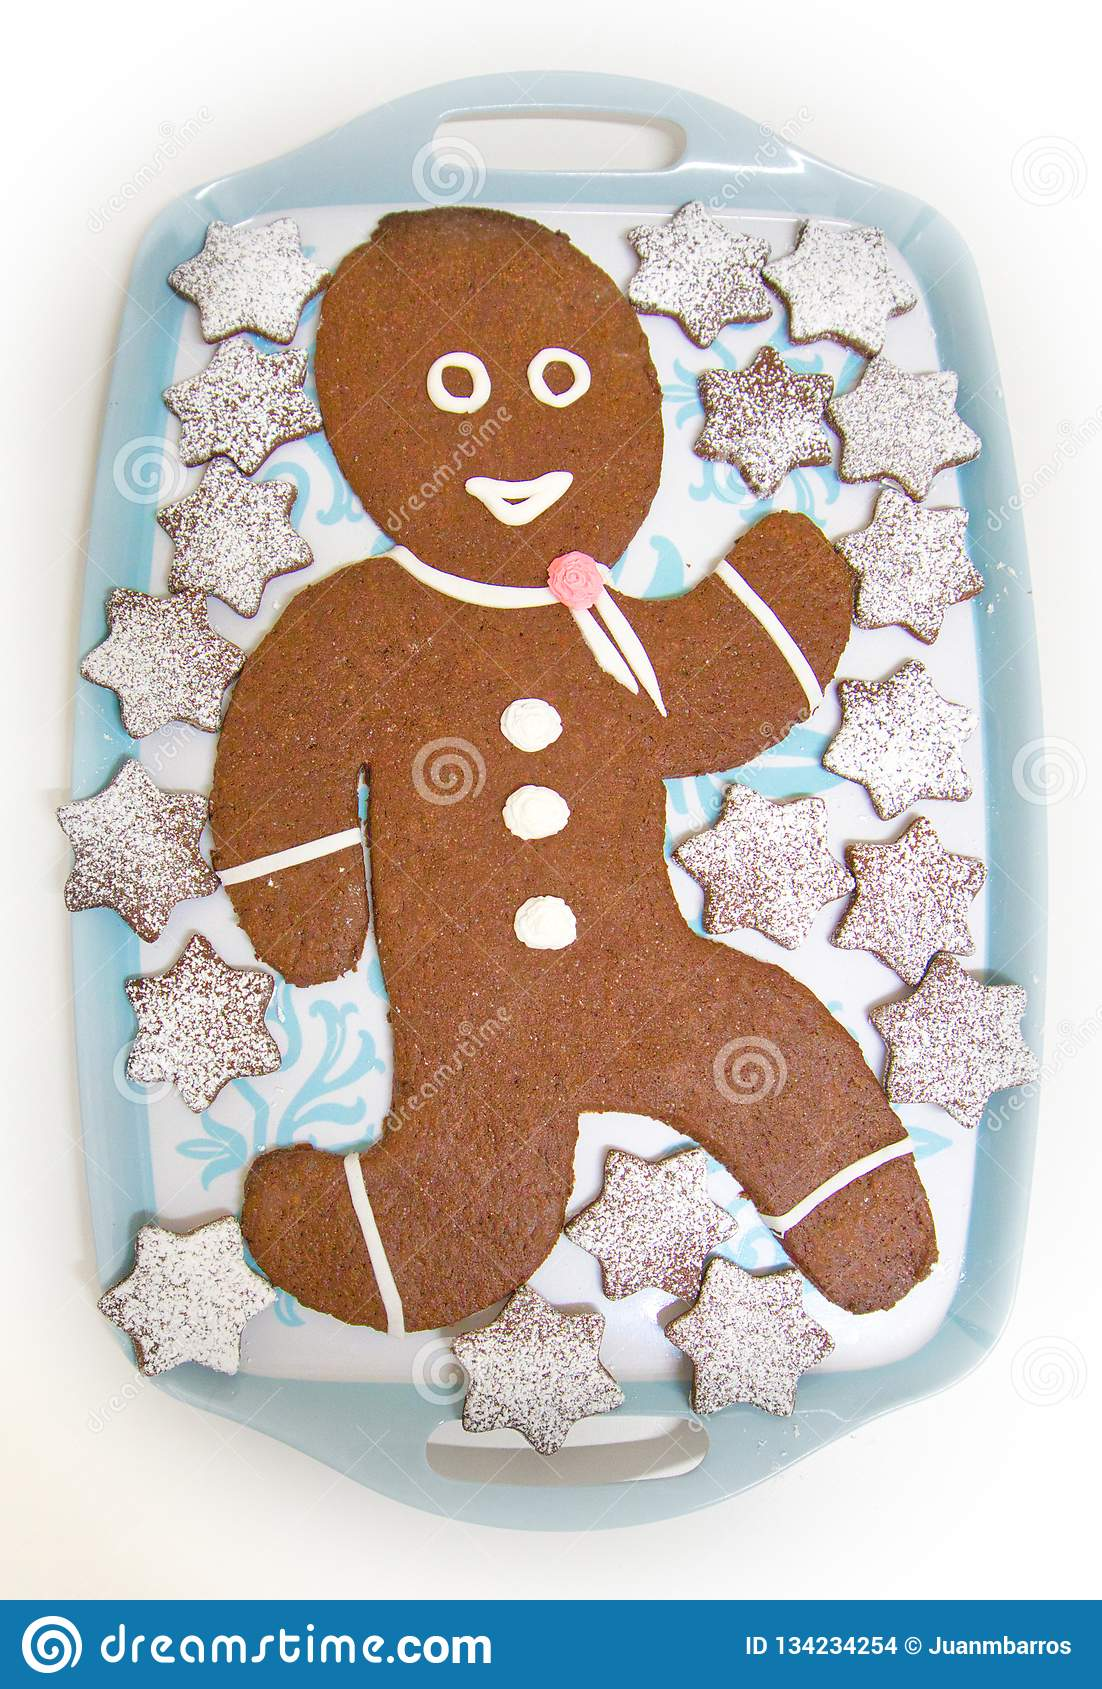 Gingerbread doll with chocolate and stars